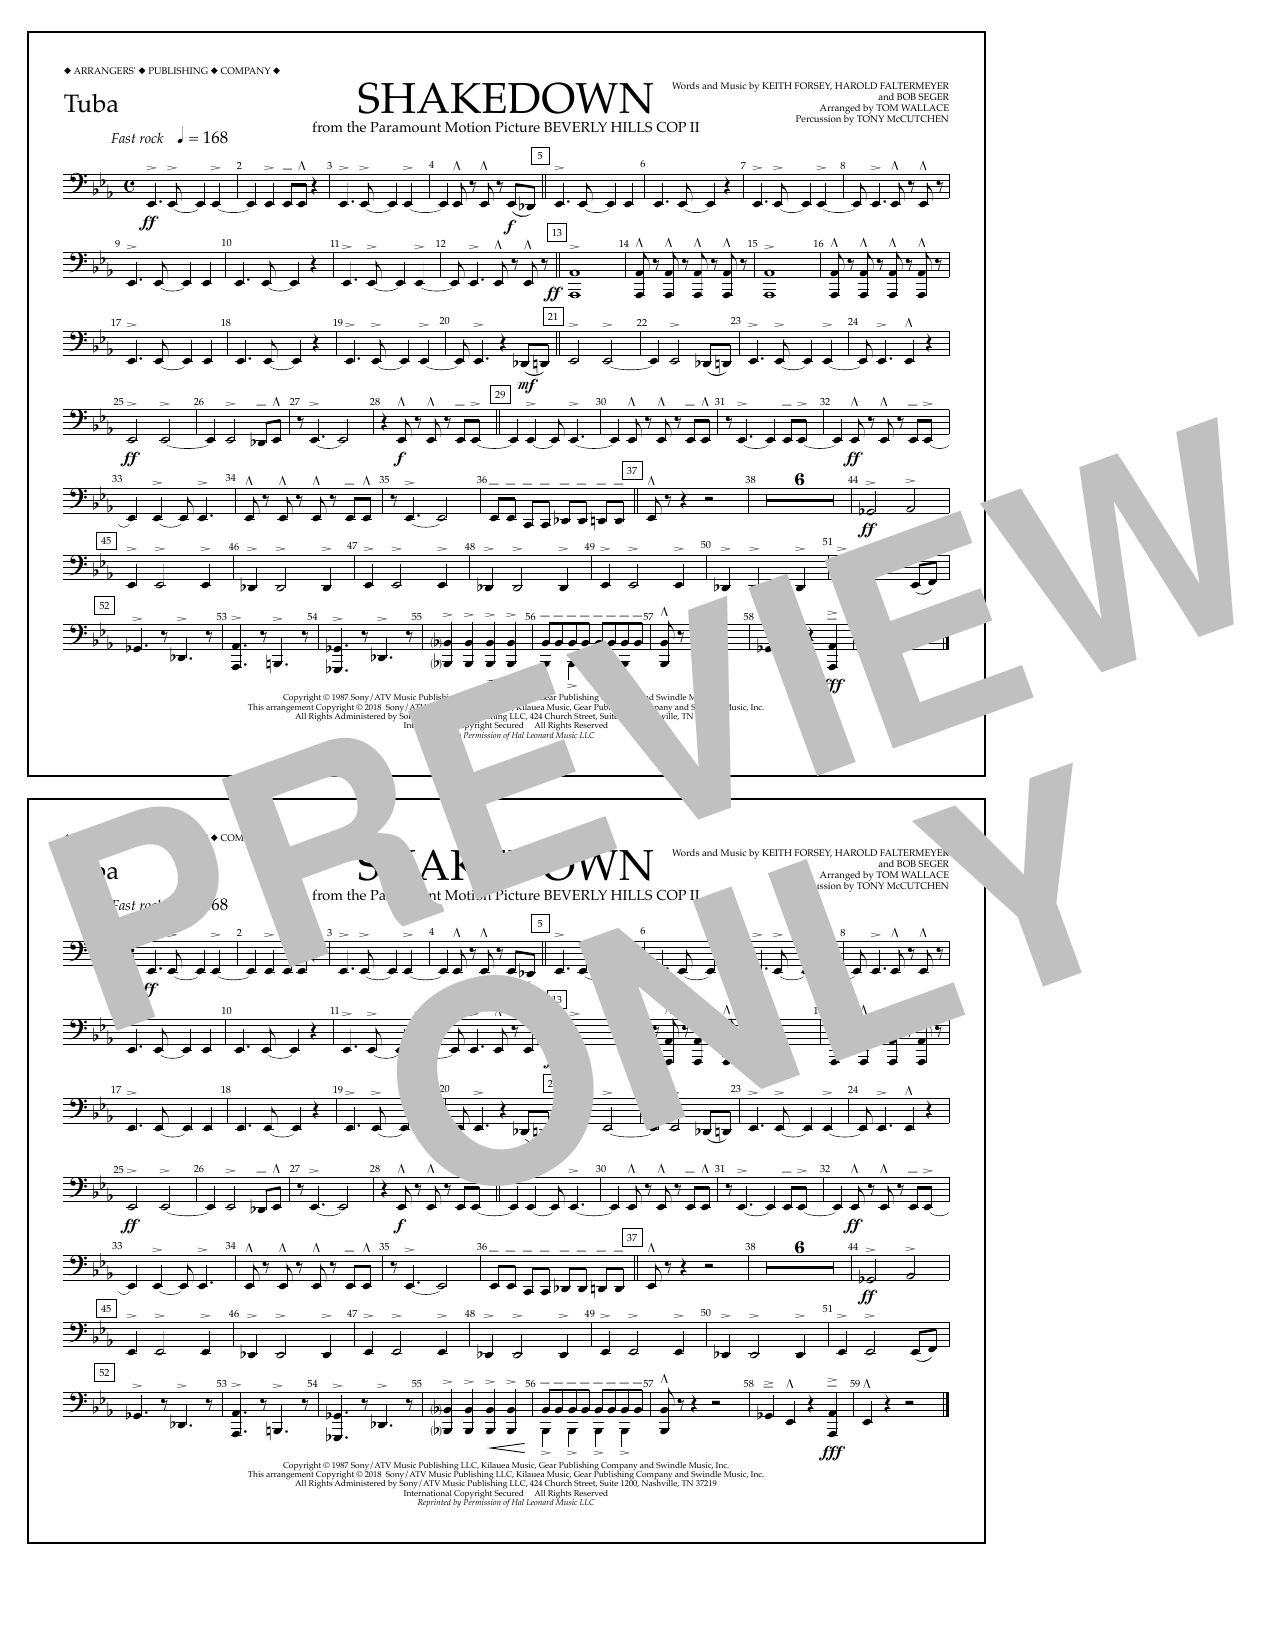 Tom Wallace Shakedown - Tuba sheet music notes and chords. Download Printable PDF.